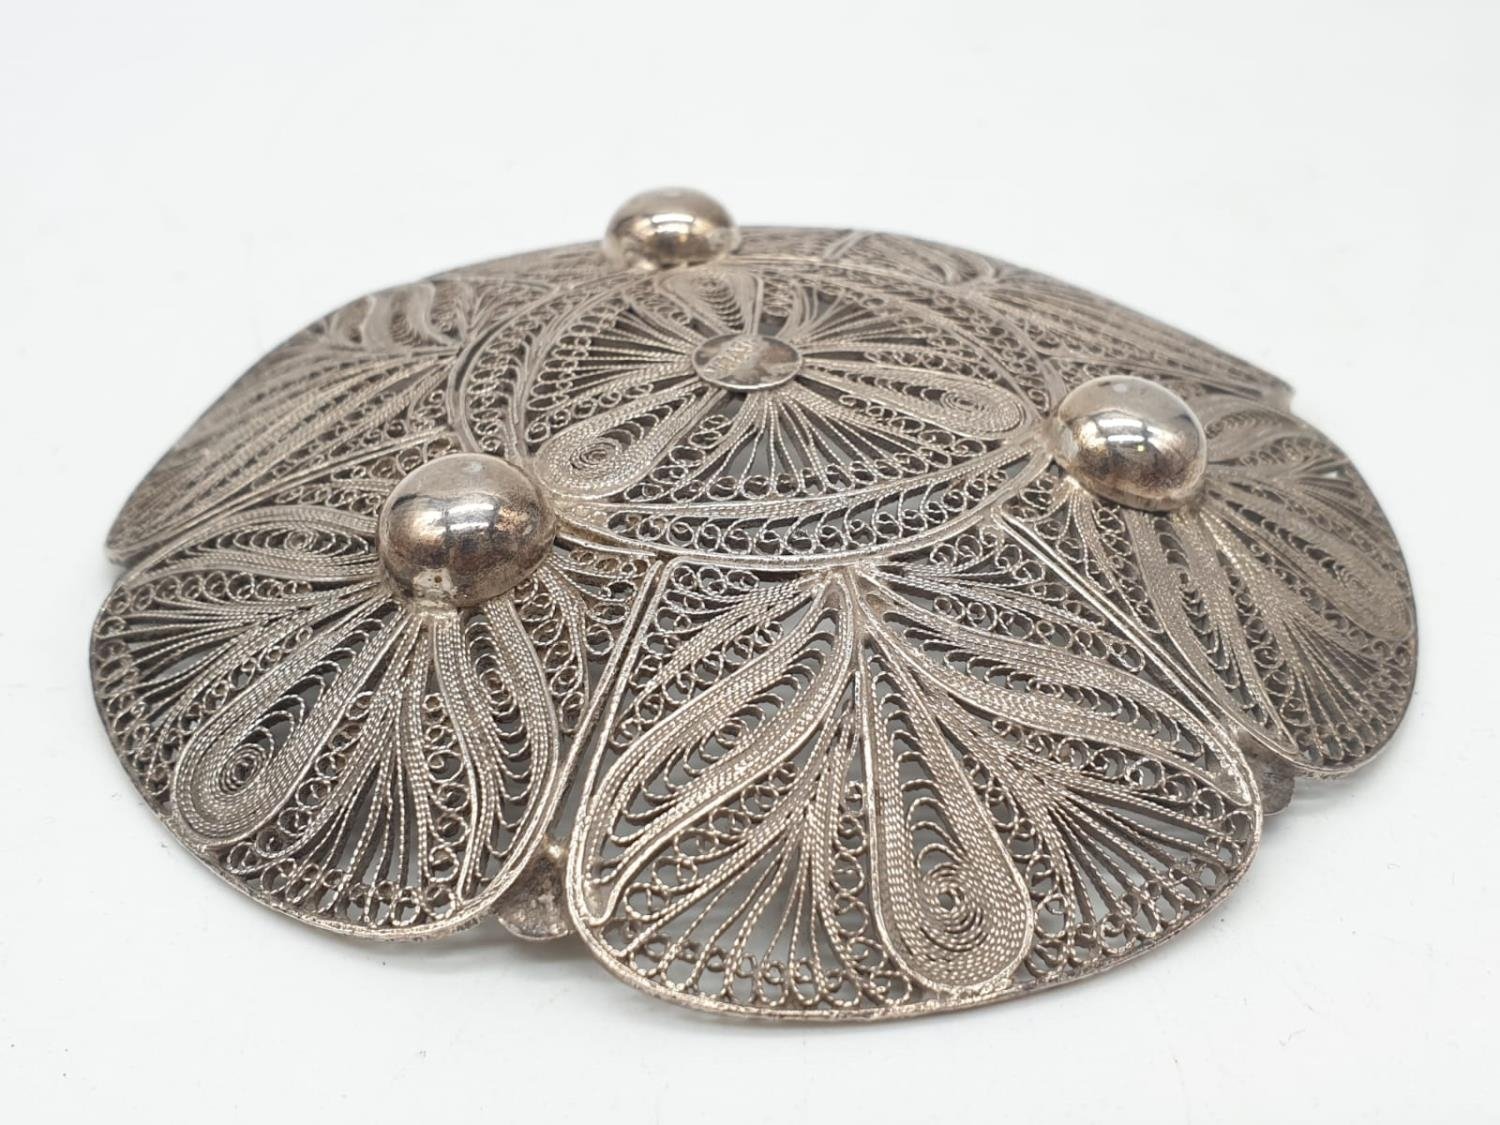 Silver filigree dish. 61.3g in weight. 10cm diameter. - Image 3 of 4